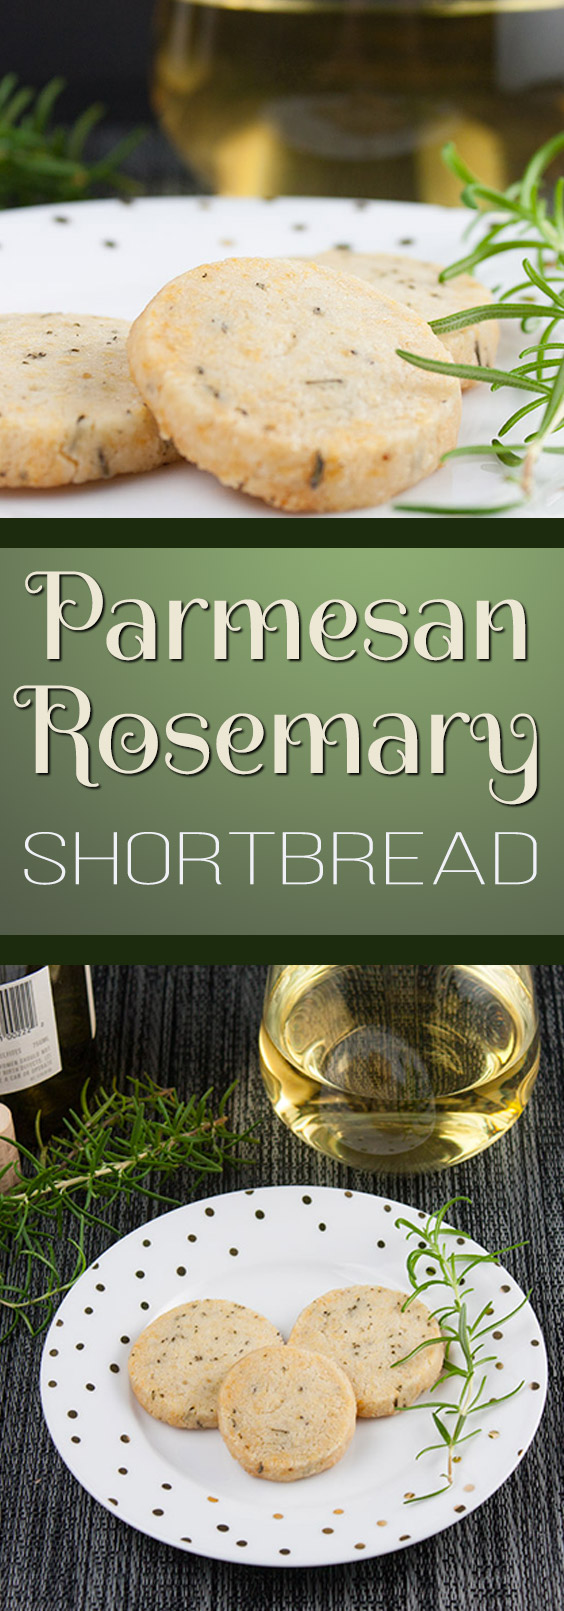 Savory Parmesan Rosemary Shortbread - Fresh rosemary, parmesan cheese and loads of fresh cracked black pepper make this the perfect cocktail appetizer or just a snack. #holidays #recipe #coctails #cookies